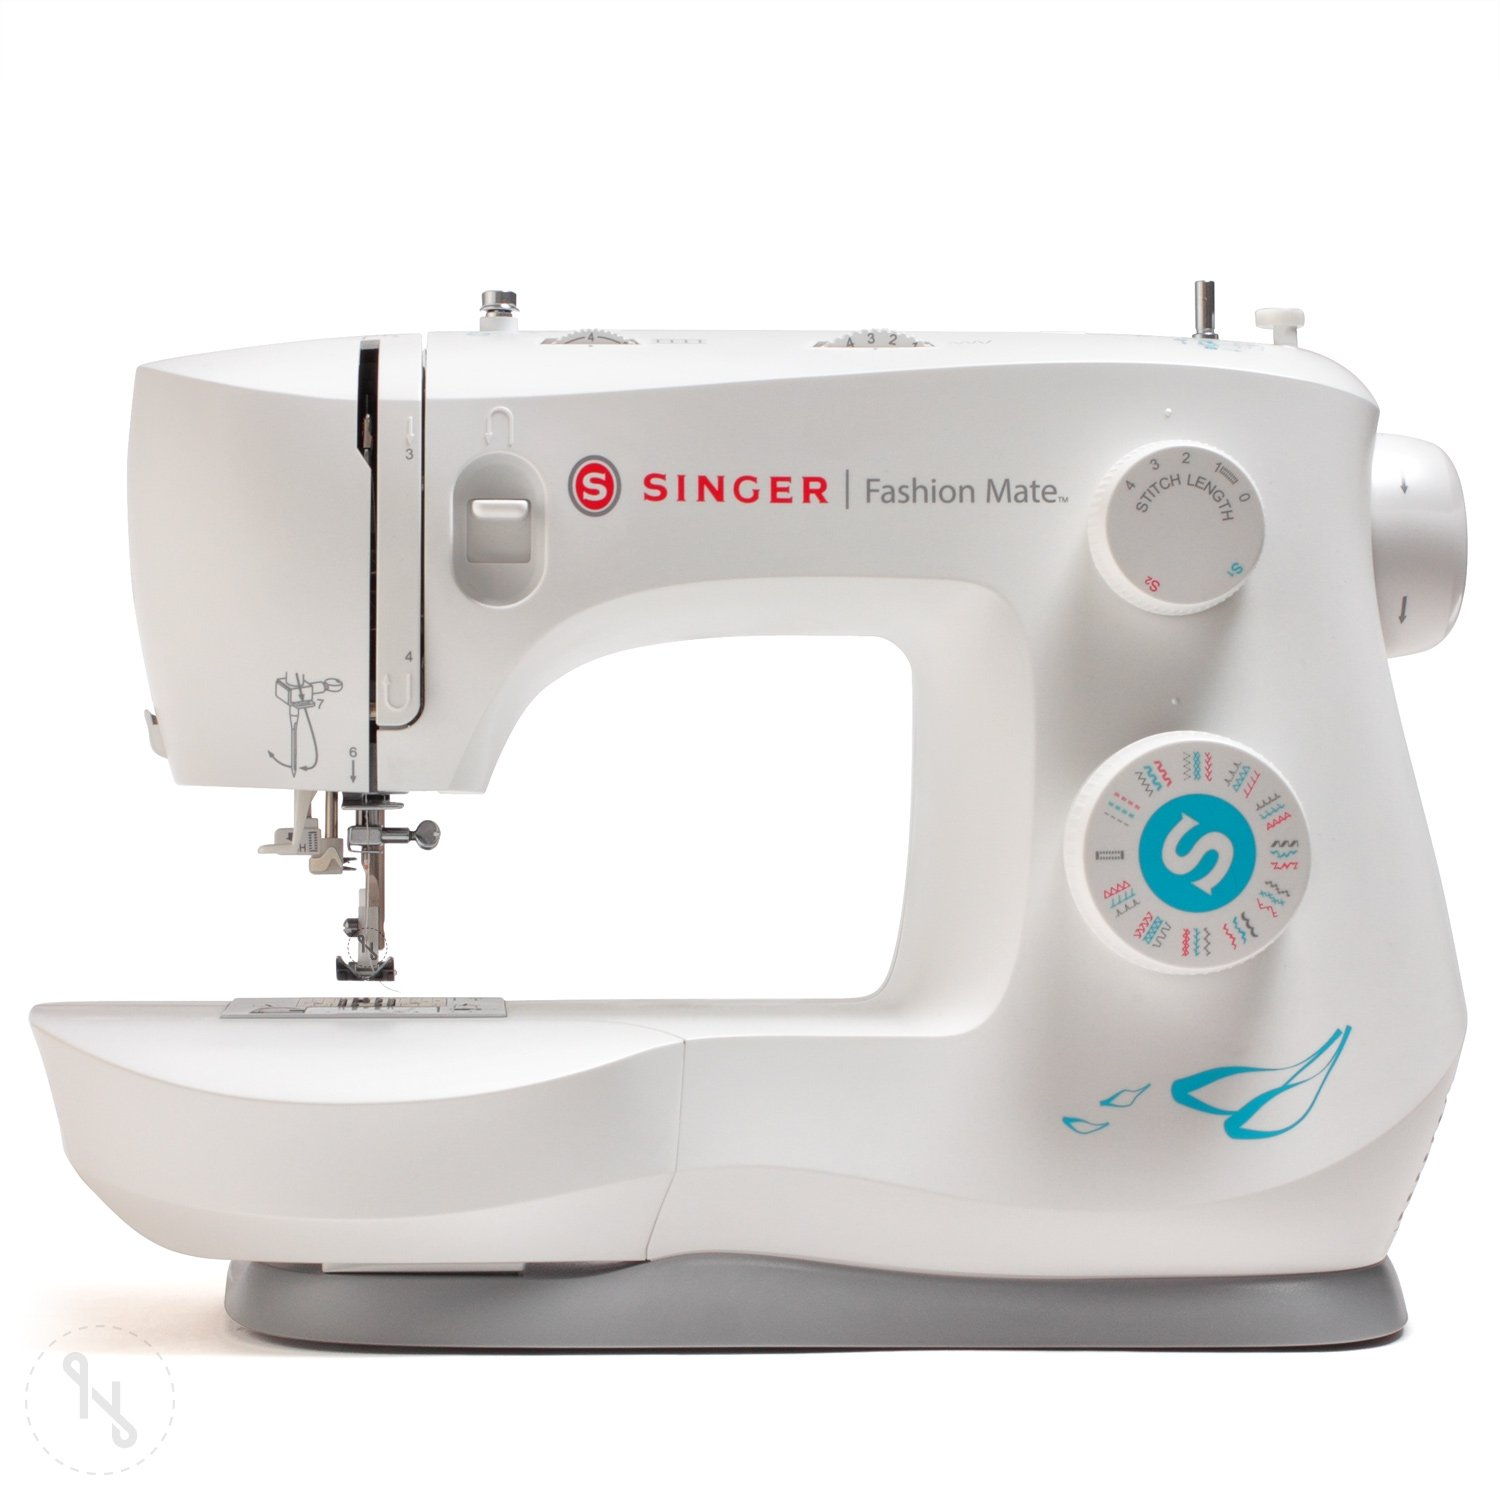 Singer - Fashion Mate 3342 - Sewing Machine